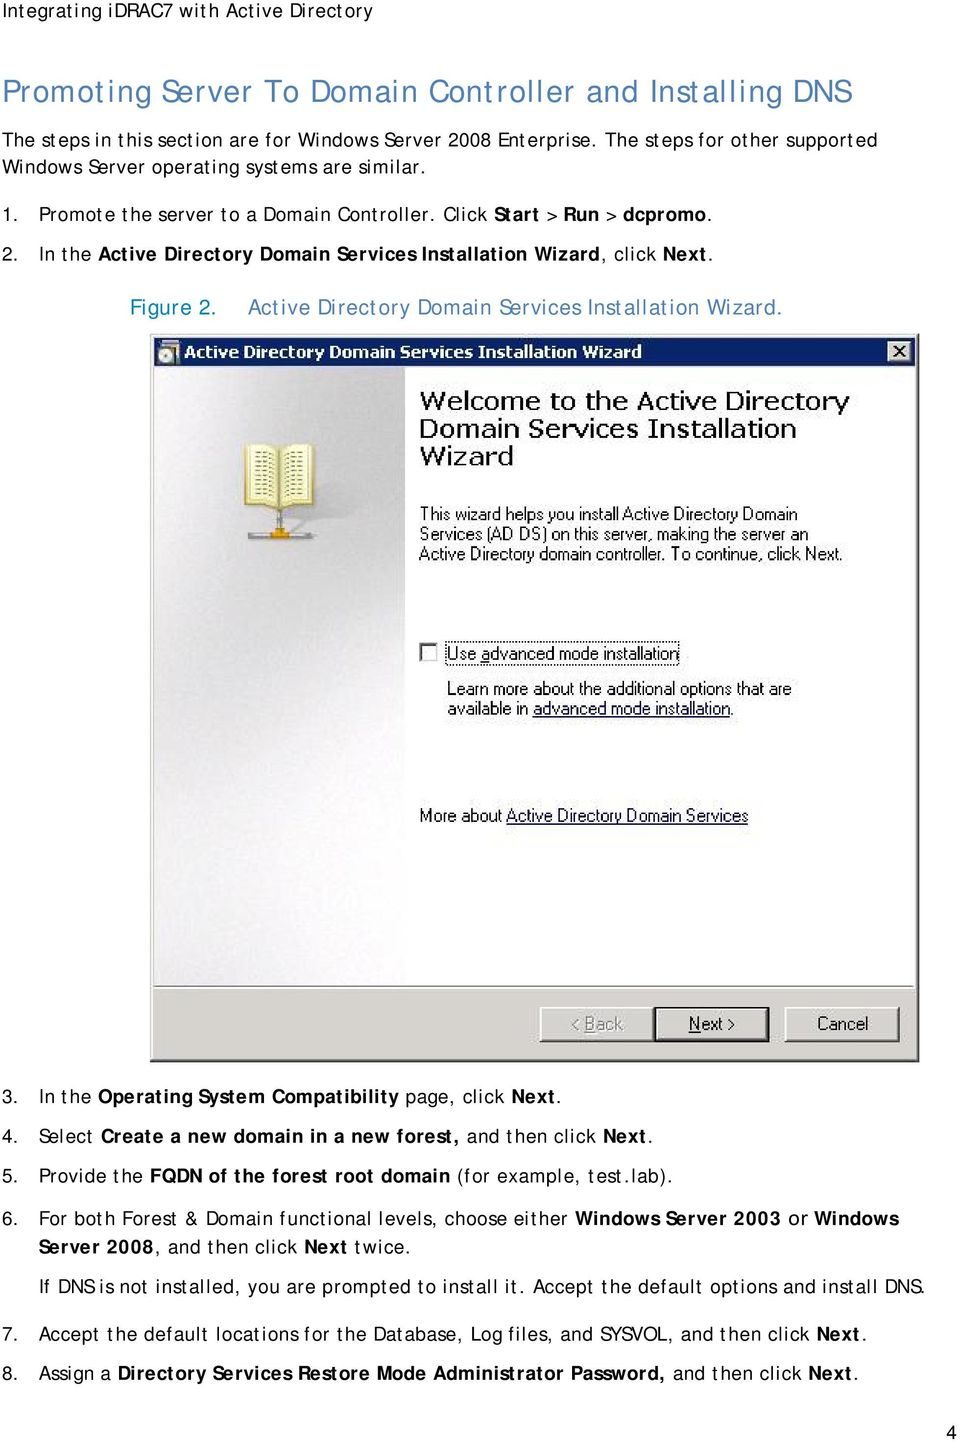 Active Directory Domain Services Installation Wizard. 3. In the Operating System Compatibility page, click Next. 4. Select Create a new domain in a new forest, and then click Next. 5.